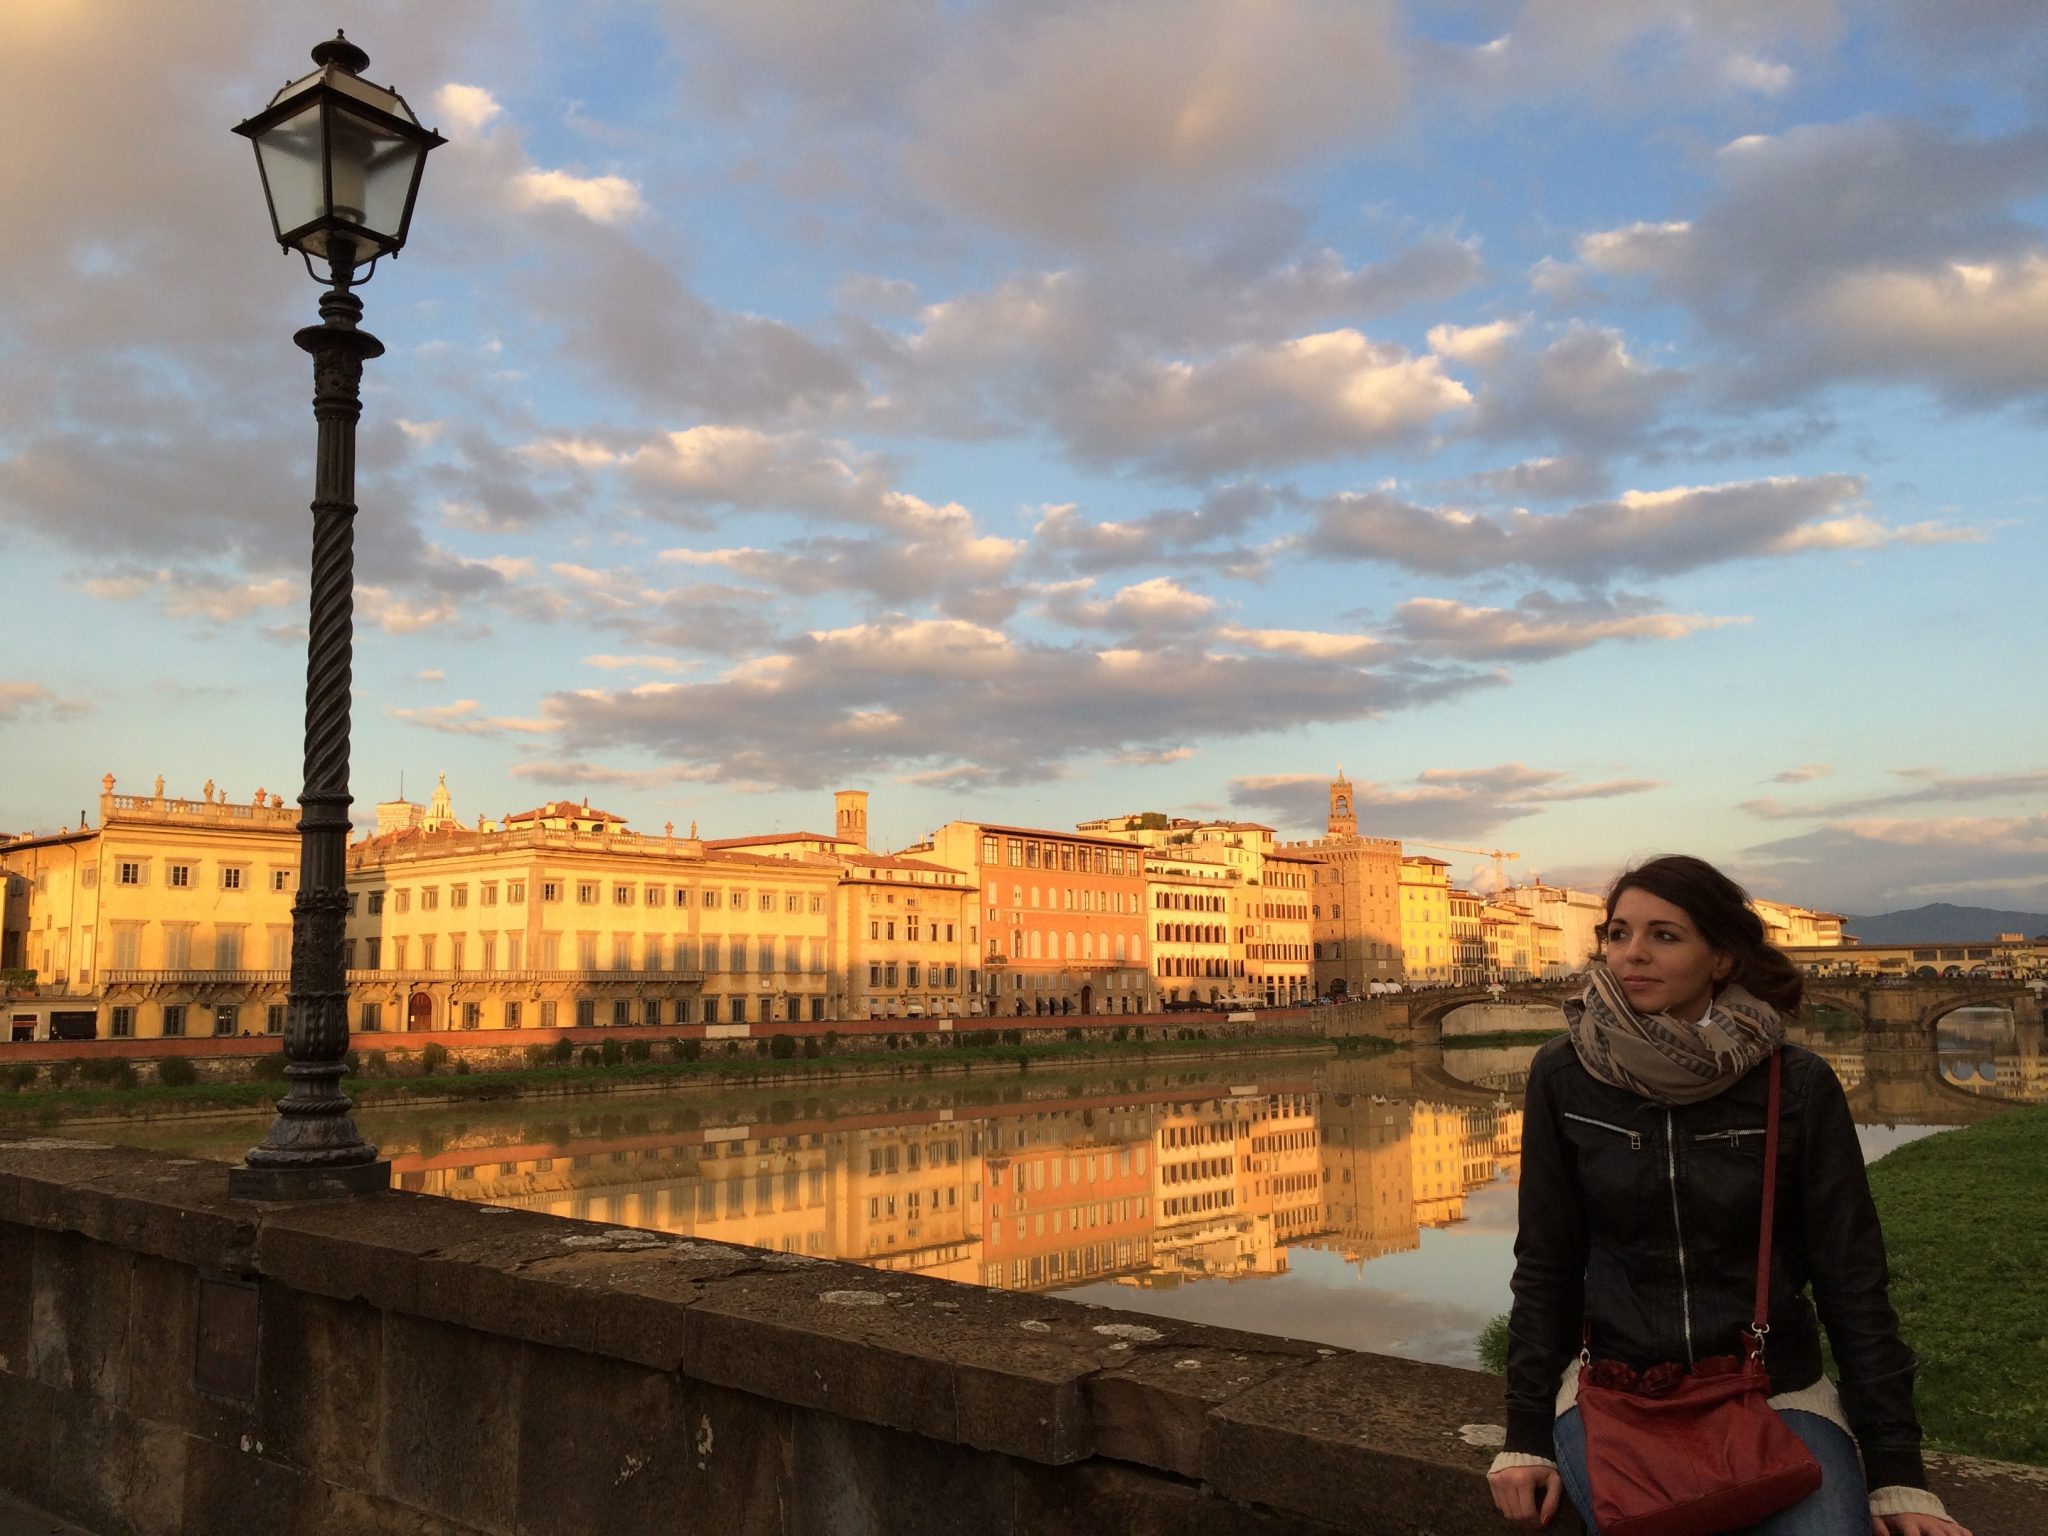 The sunset in November in Florence, from Ponte alla Carraia